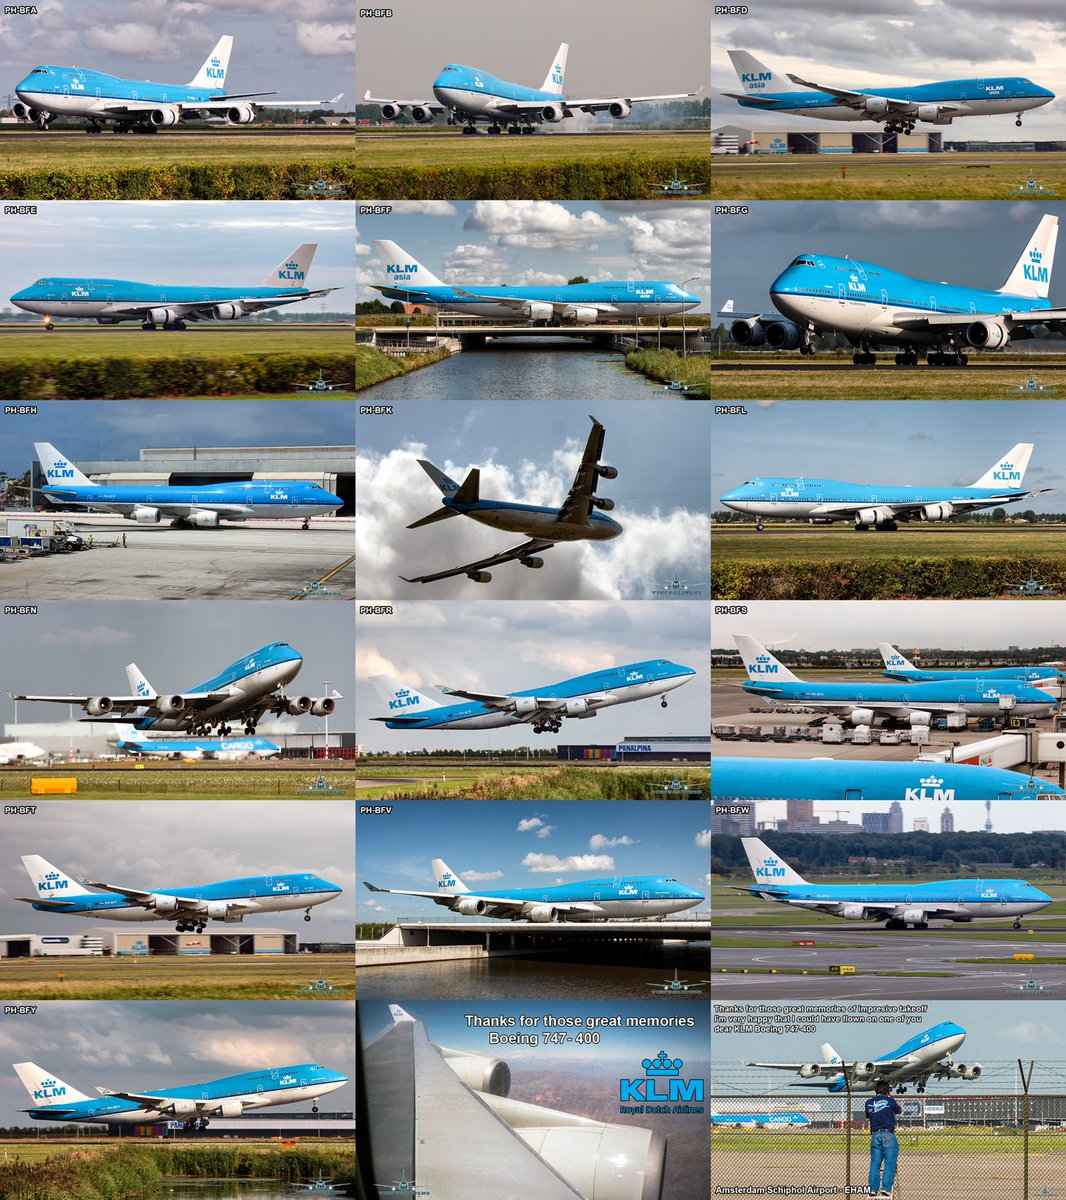 Farewell @KLM , Queen of the Skies, Boeing 747-400. I happy that I could have flown on you, thanks for that amazing experience & thanks for those great sights  We will miss you ! #AvGeek #boeing747 #aviationphotography #SpottersChile #virtualiners #planespotting @avgeekyyz #KLMpic.twitter.com/MJ56jnerBr